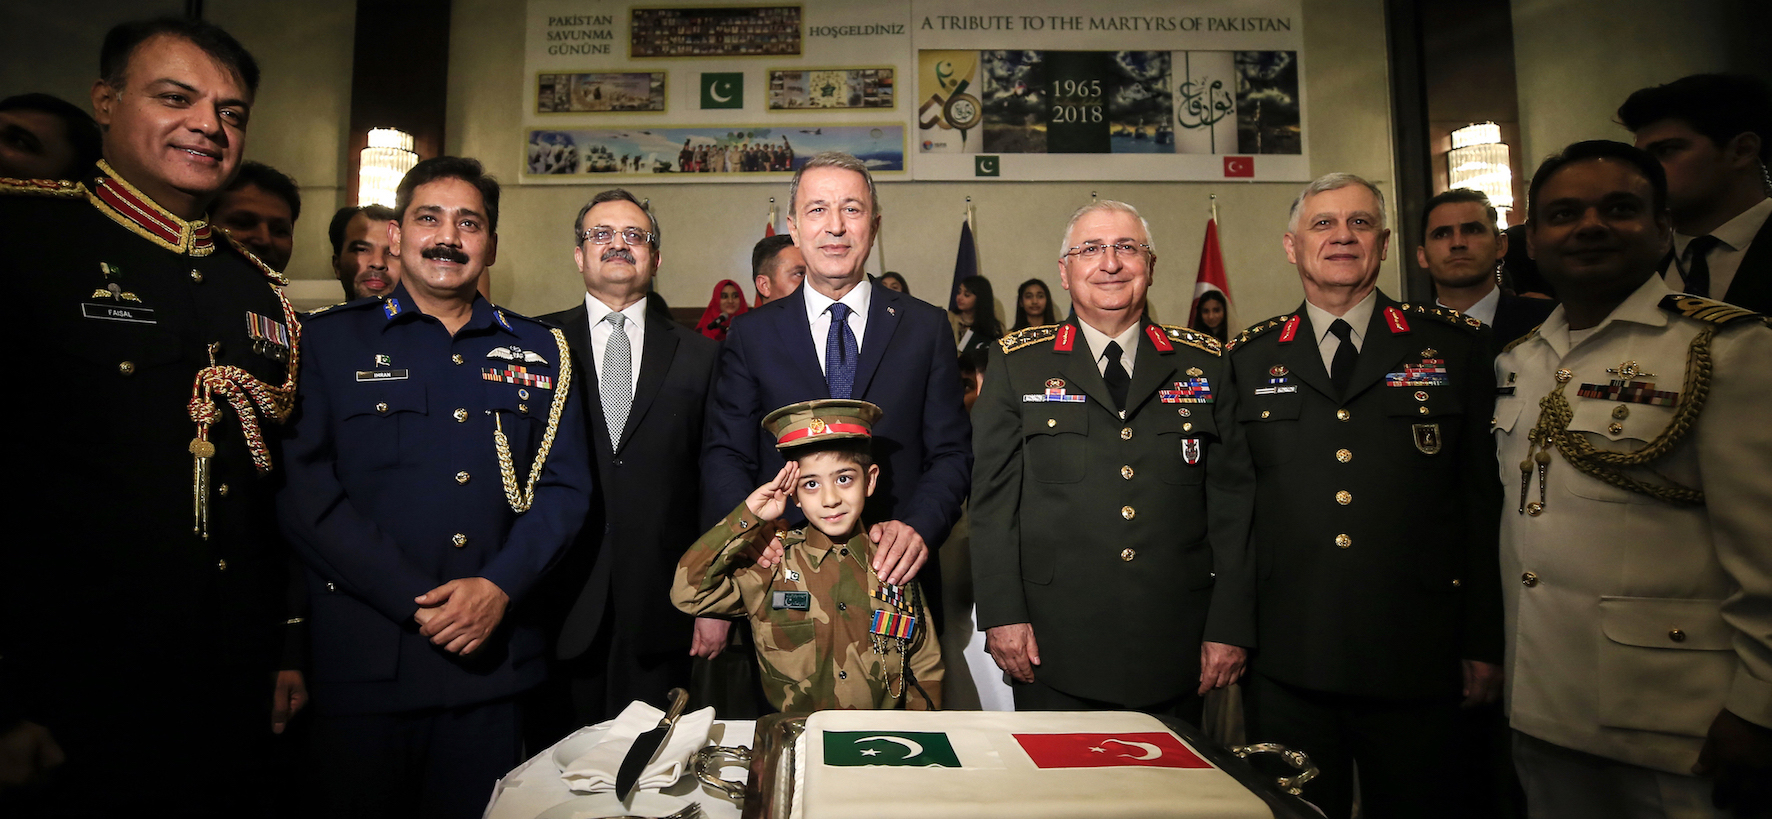 Cake cutting ceremony to mark Defence Day of Pakistan in Ankara on 6 September 2018.